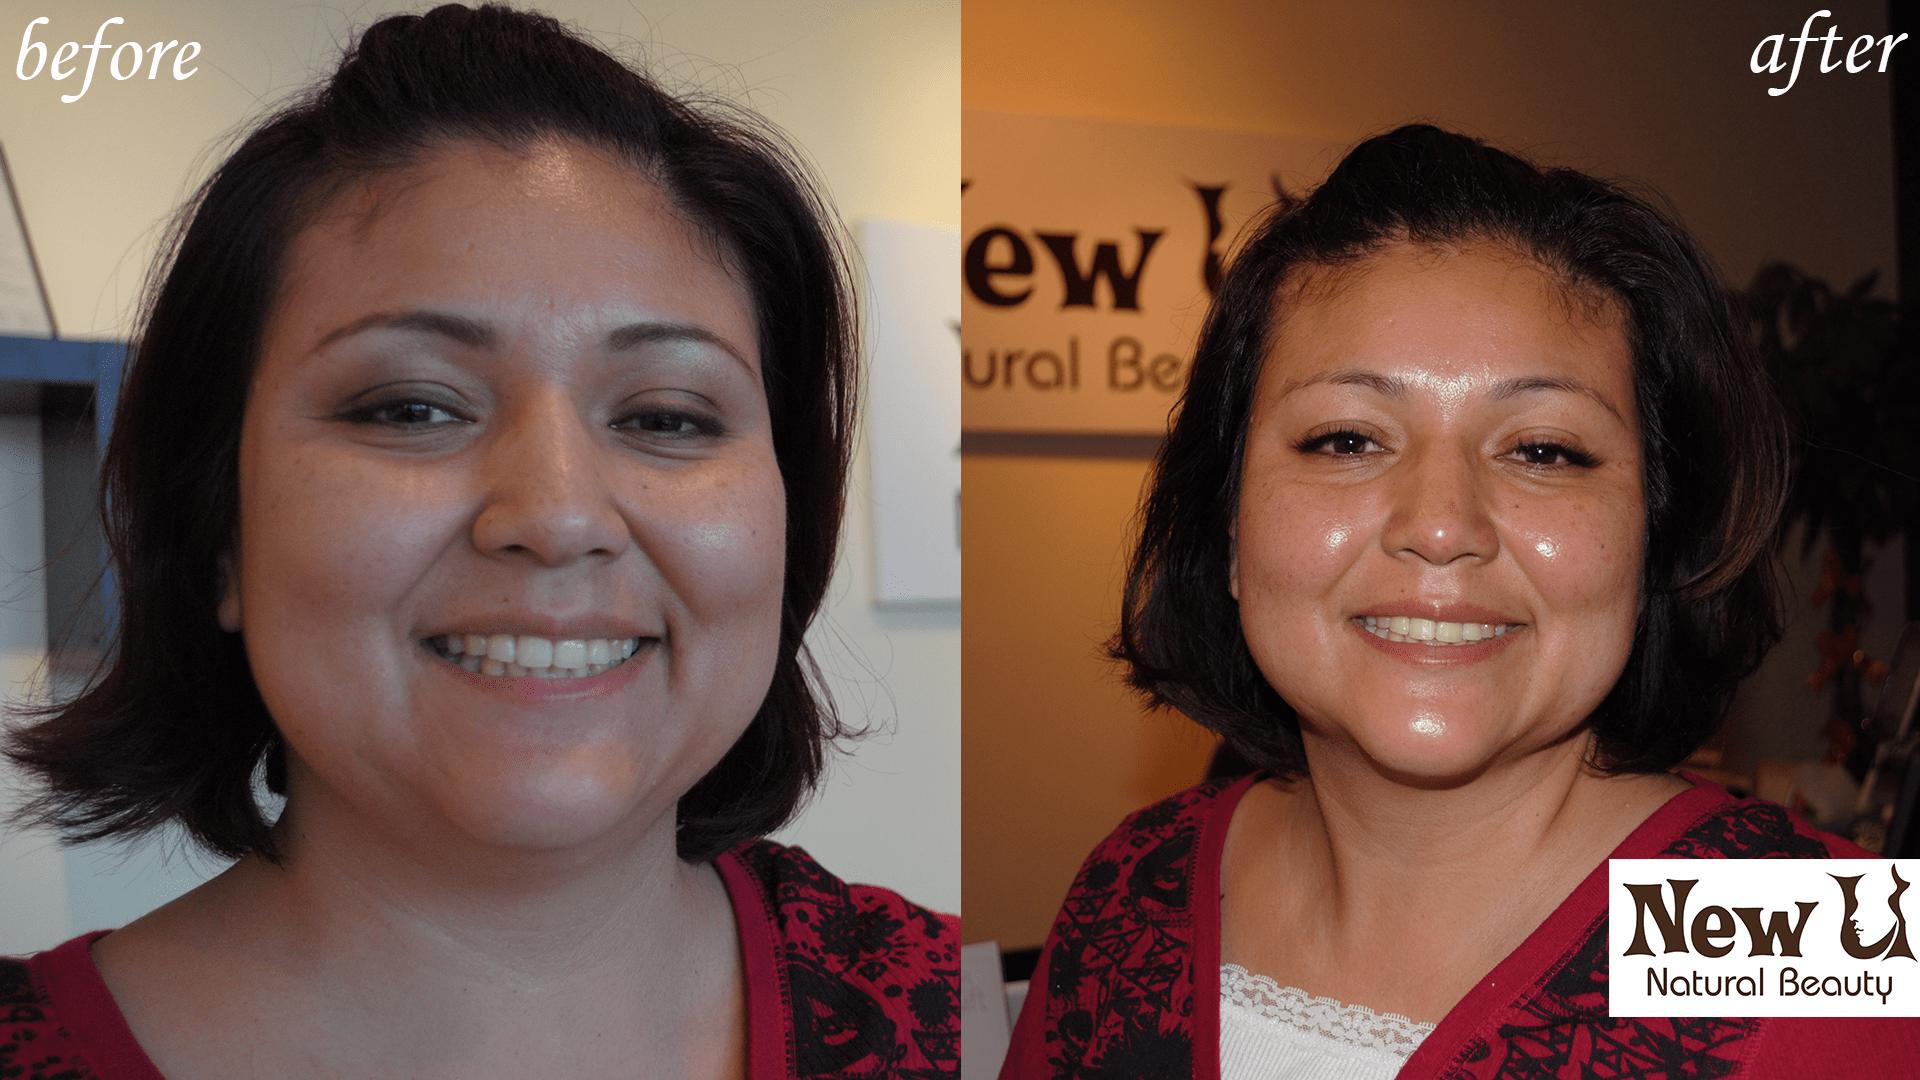 Organic Skin Care 3 Las Vegas Before and After